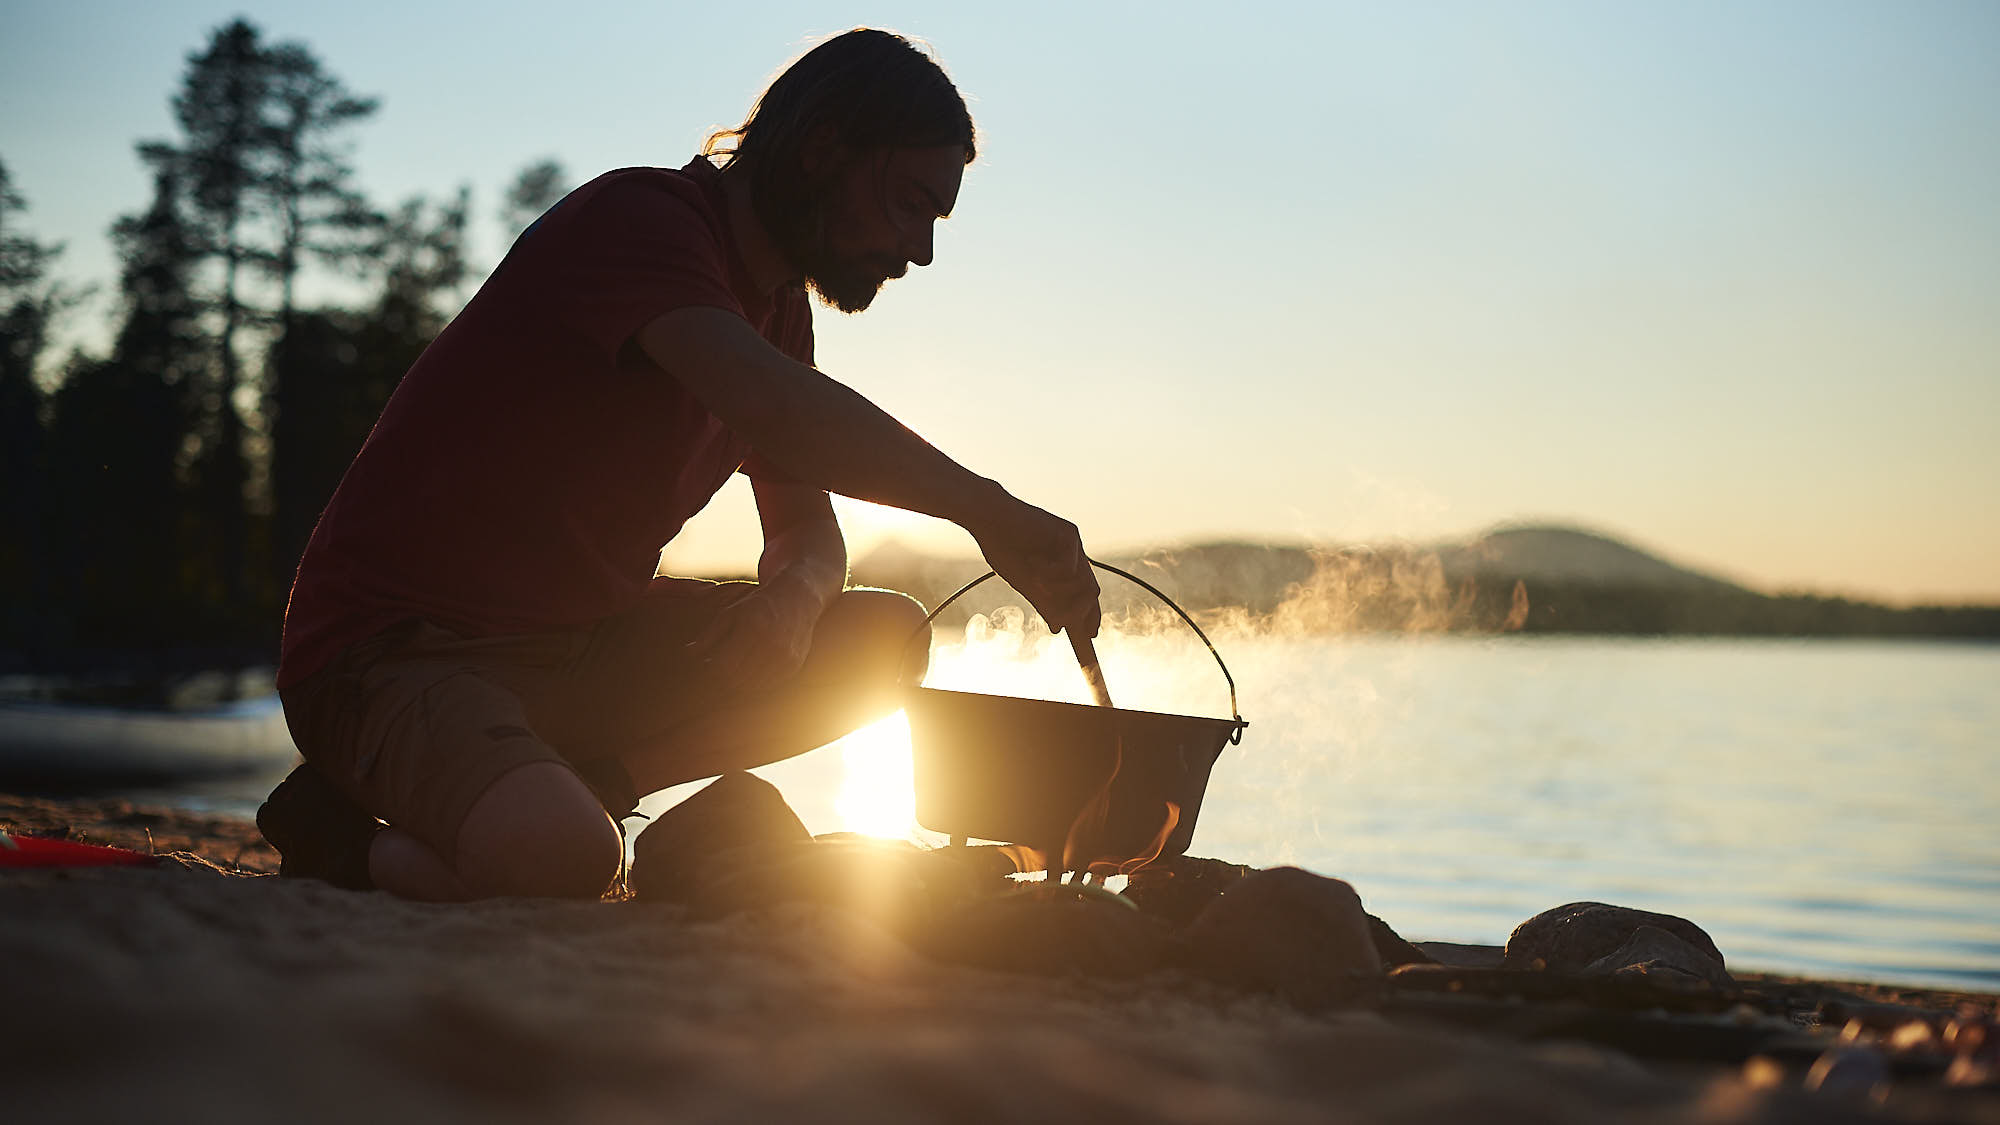 Hiker cooking a meal on a fire in the wild on a beach by a lake in Norway